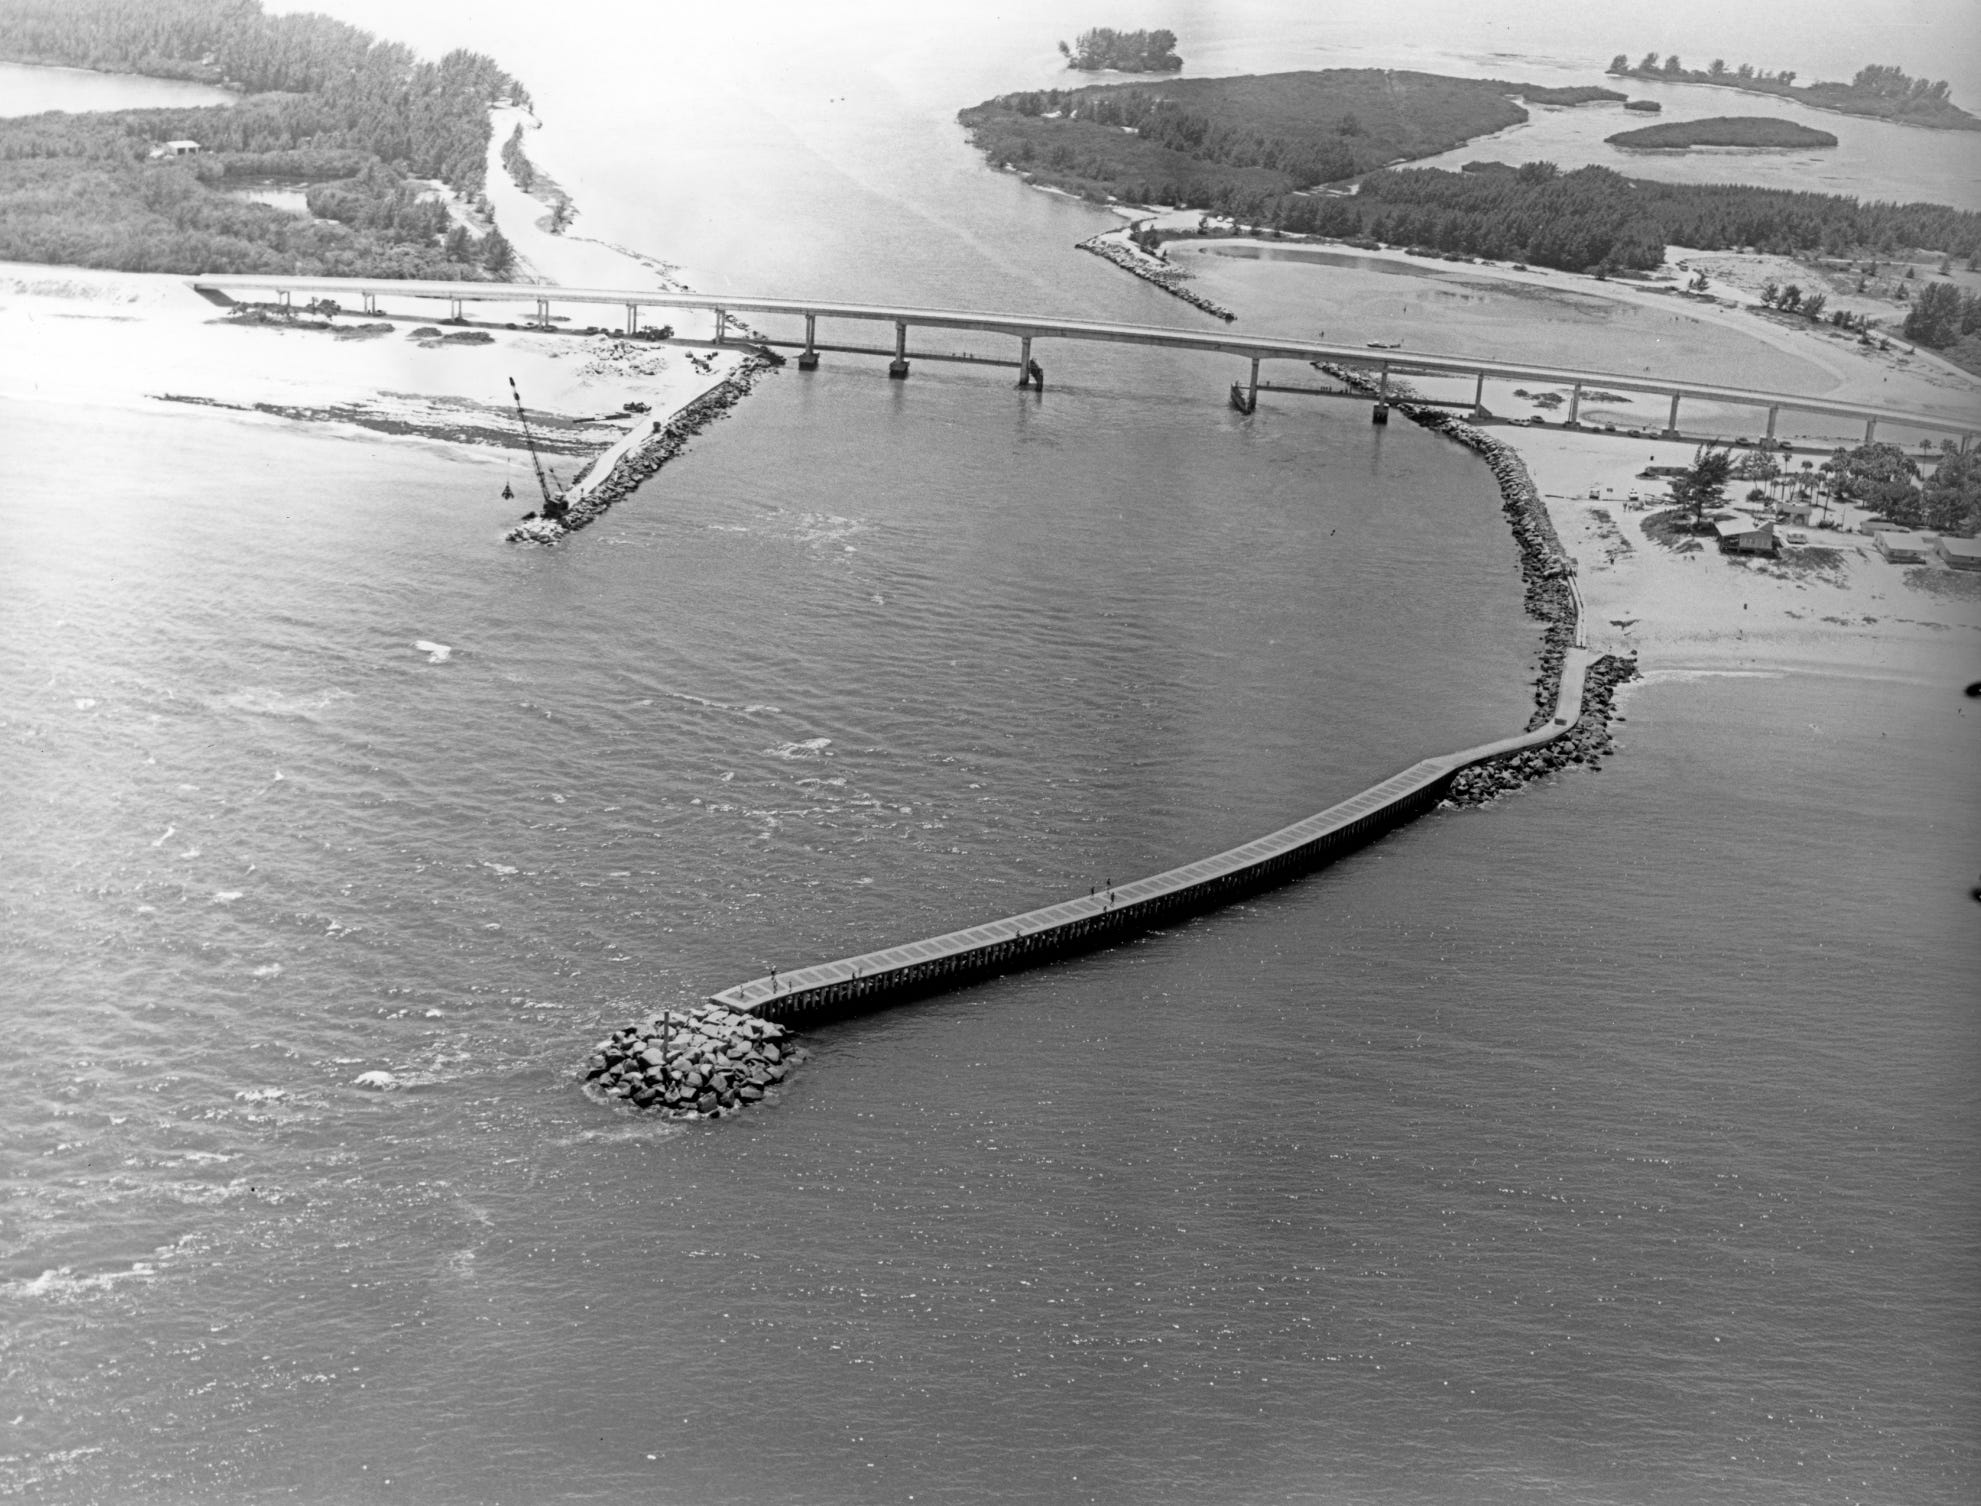 1970 aerial view of the south Jetty extension construction with concrete cap.